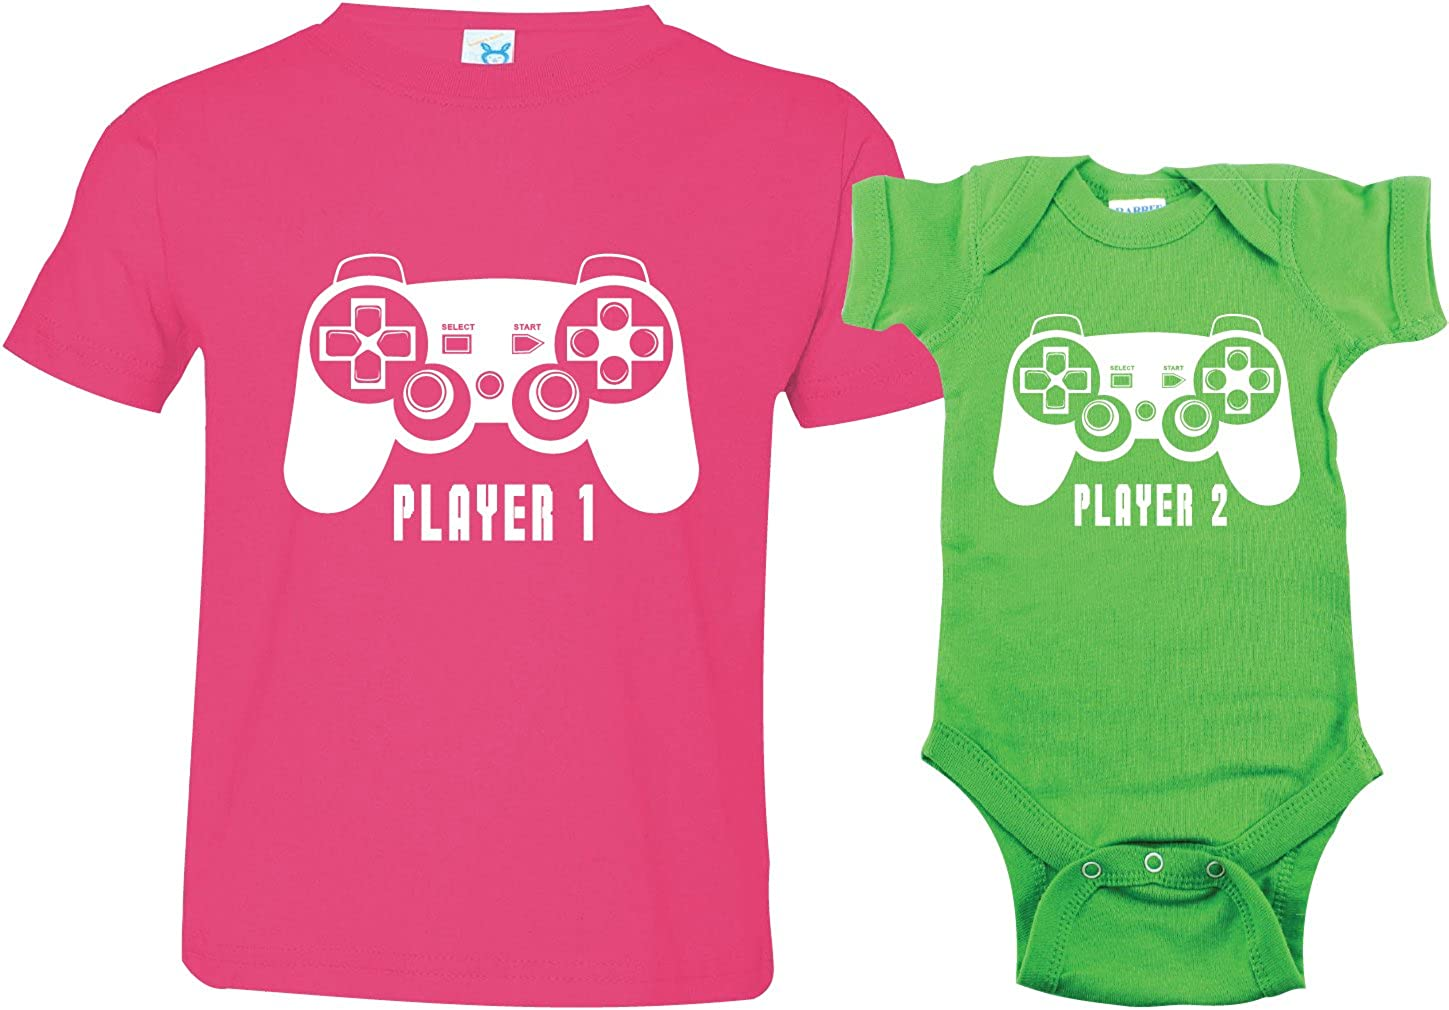 Player 2 Shirts Player 1 Shirts Texas Tees Gamer Sibling Shirts for Sisters and Brothers